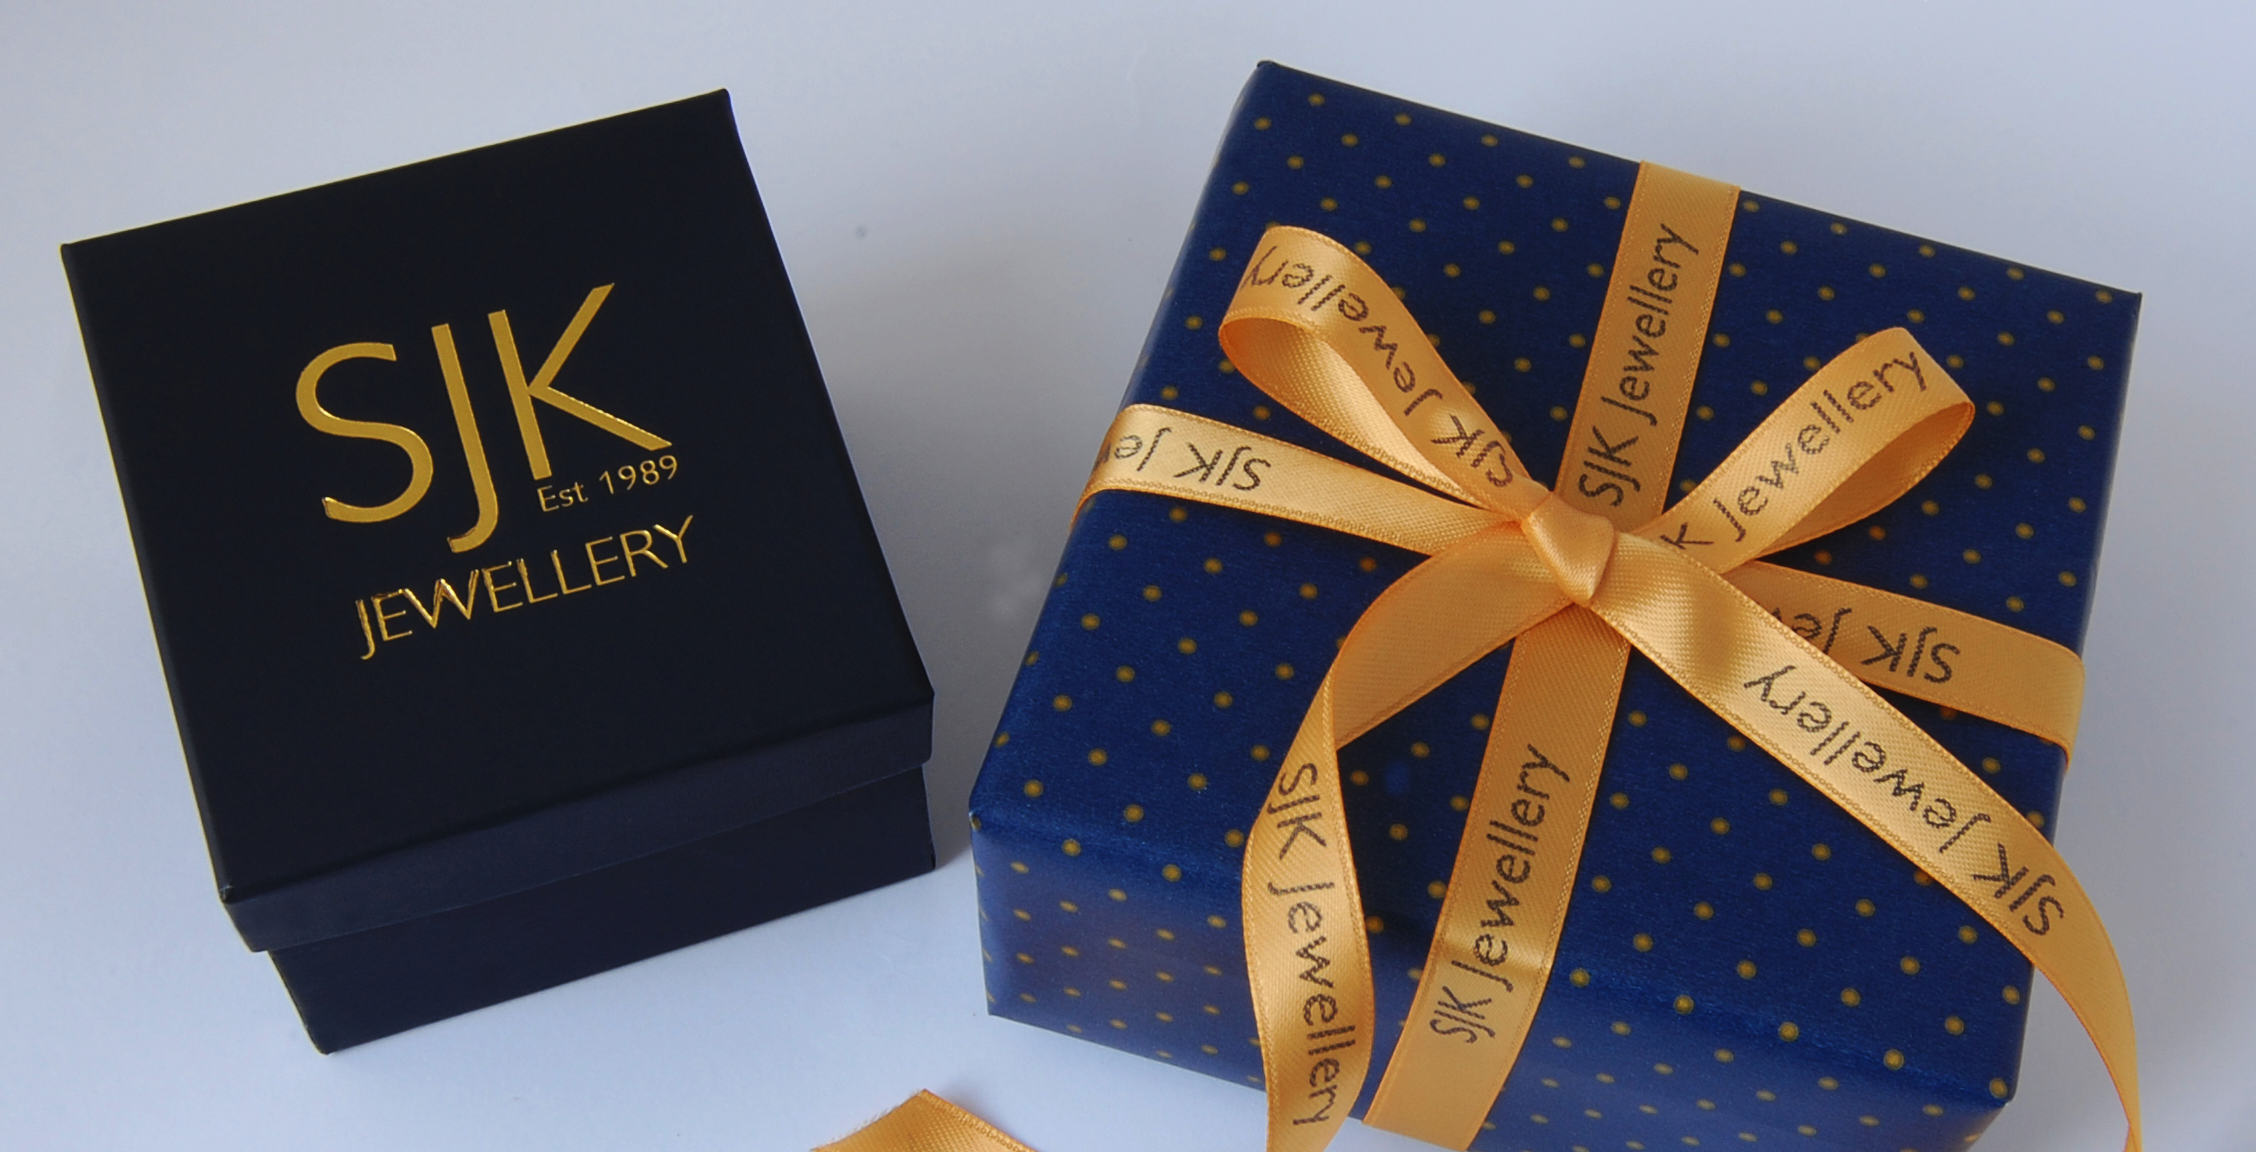 Antique-Gold-Ribbon-printed-with-Midnight-Blue-Company-Text-For-Christmas-Goft-Wrapping